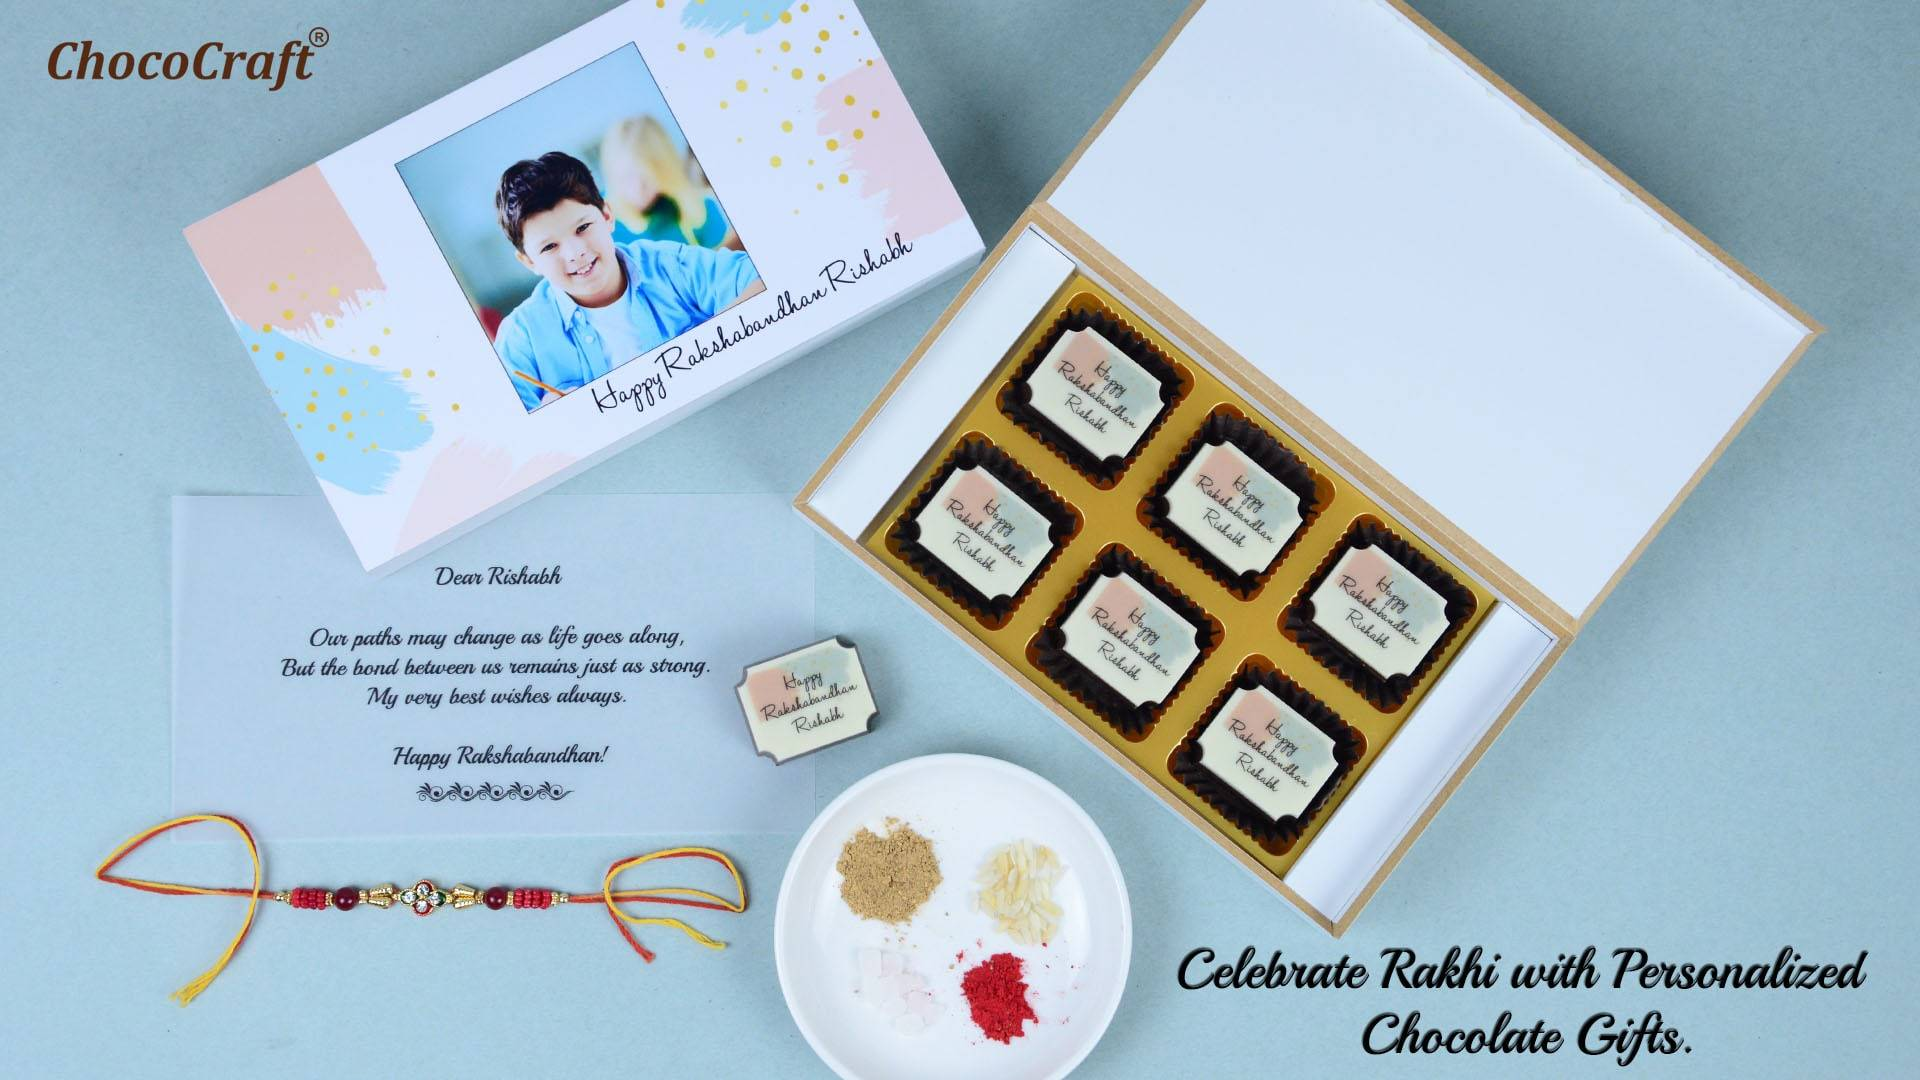 Personalized Chocolate Gifts for Rakhi